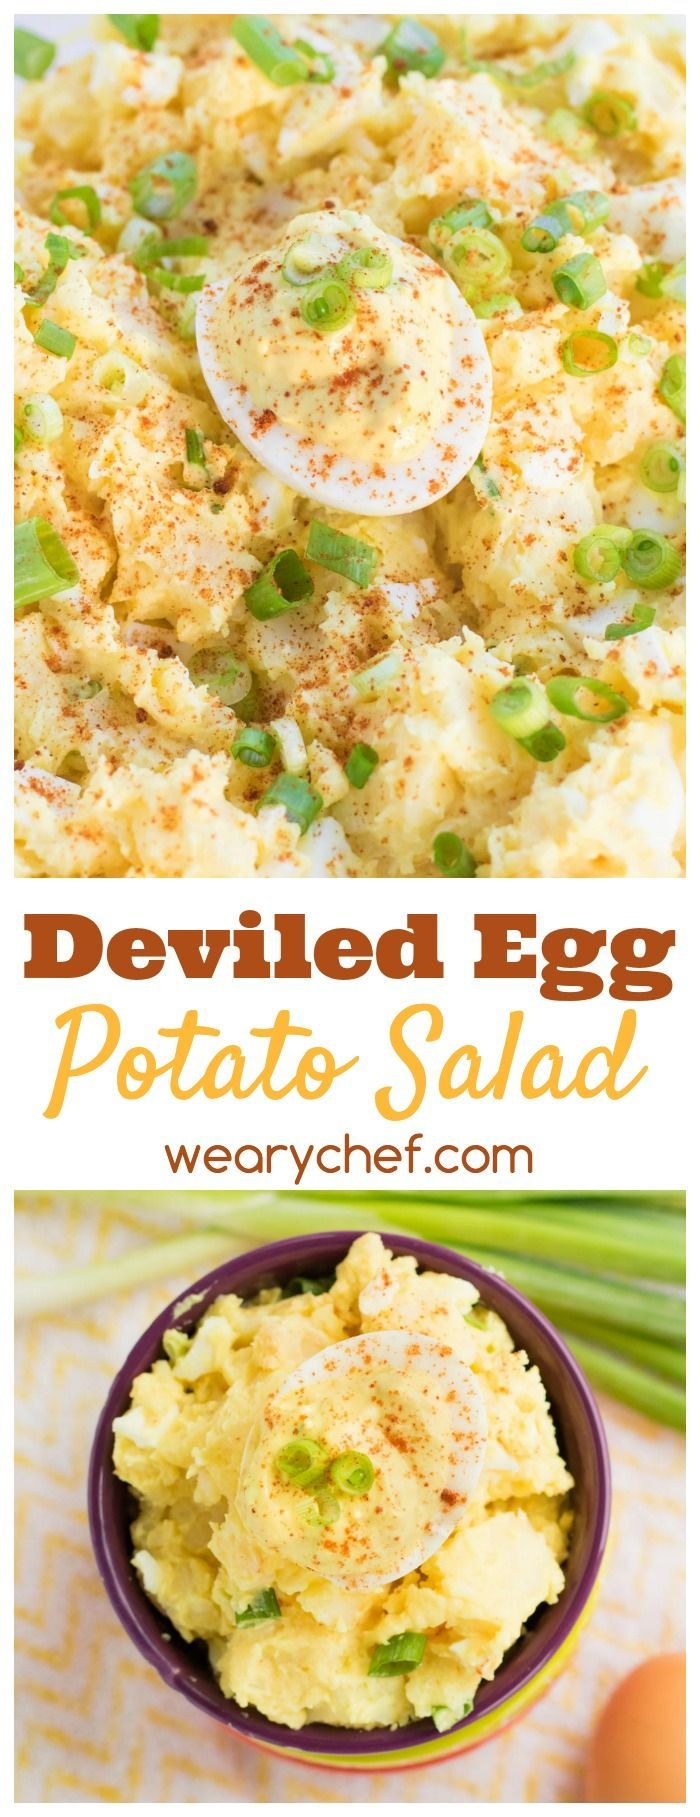 Deviled egg potato salad recipe potato salad summer for How to make homemade deviled egg potato salad